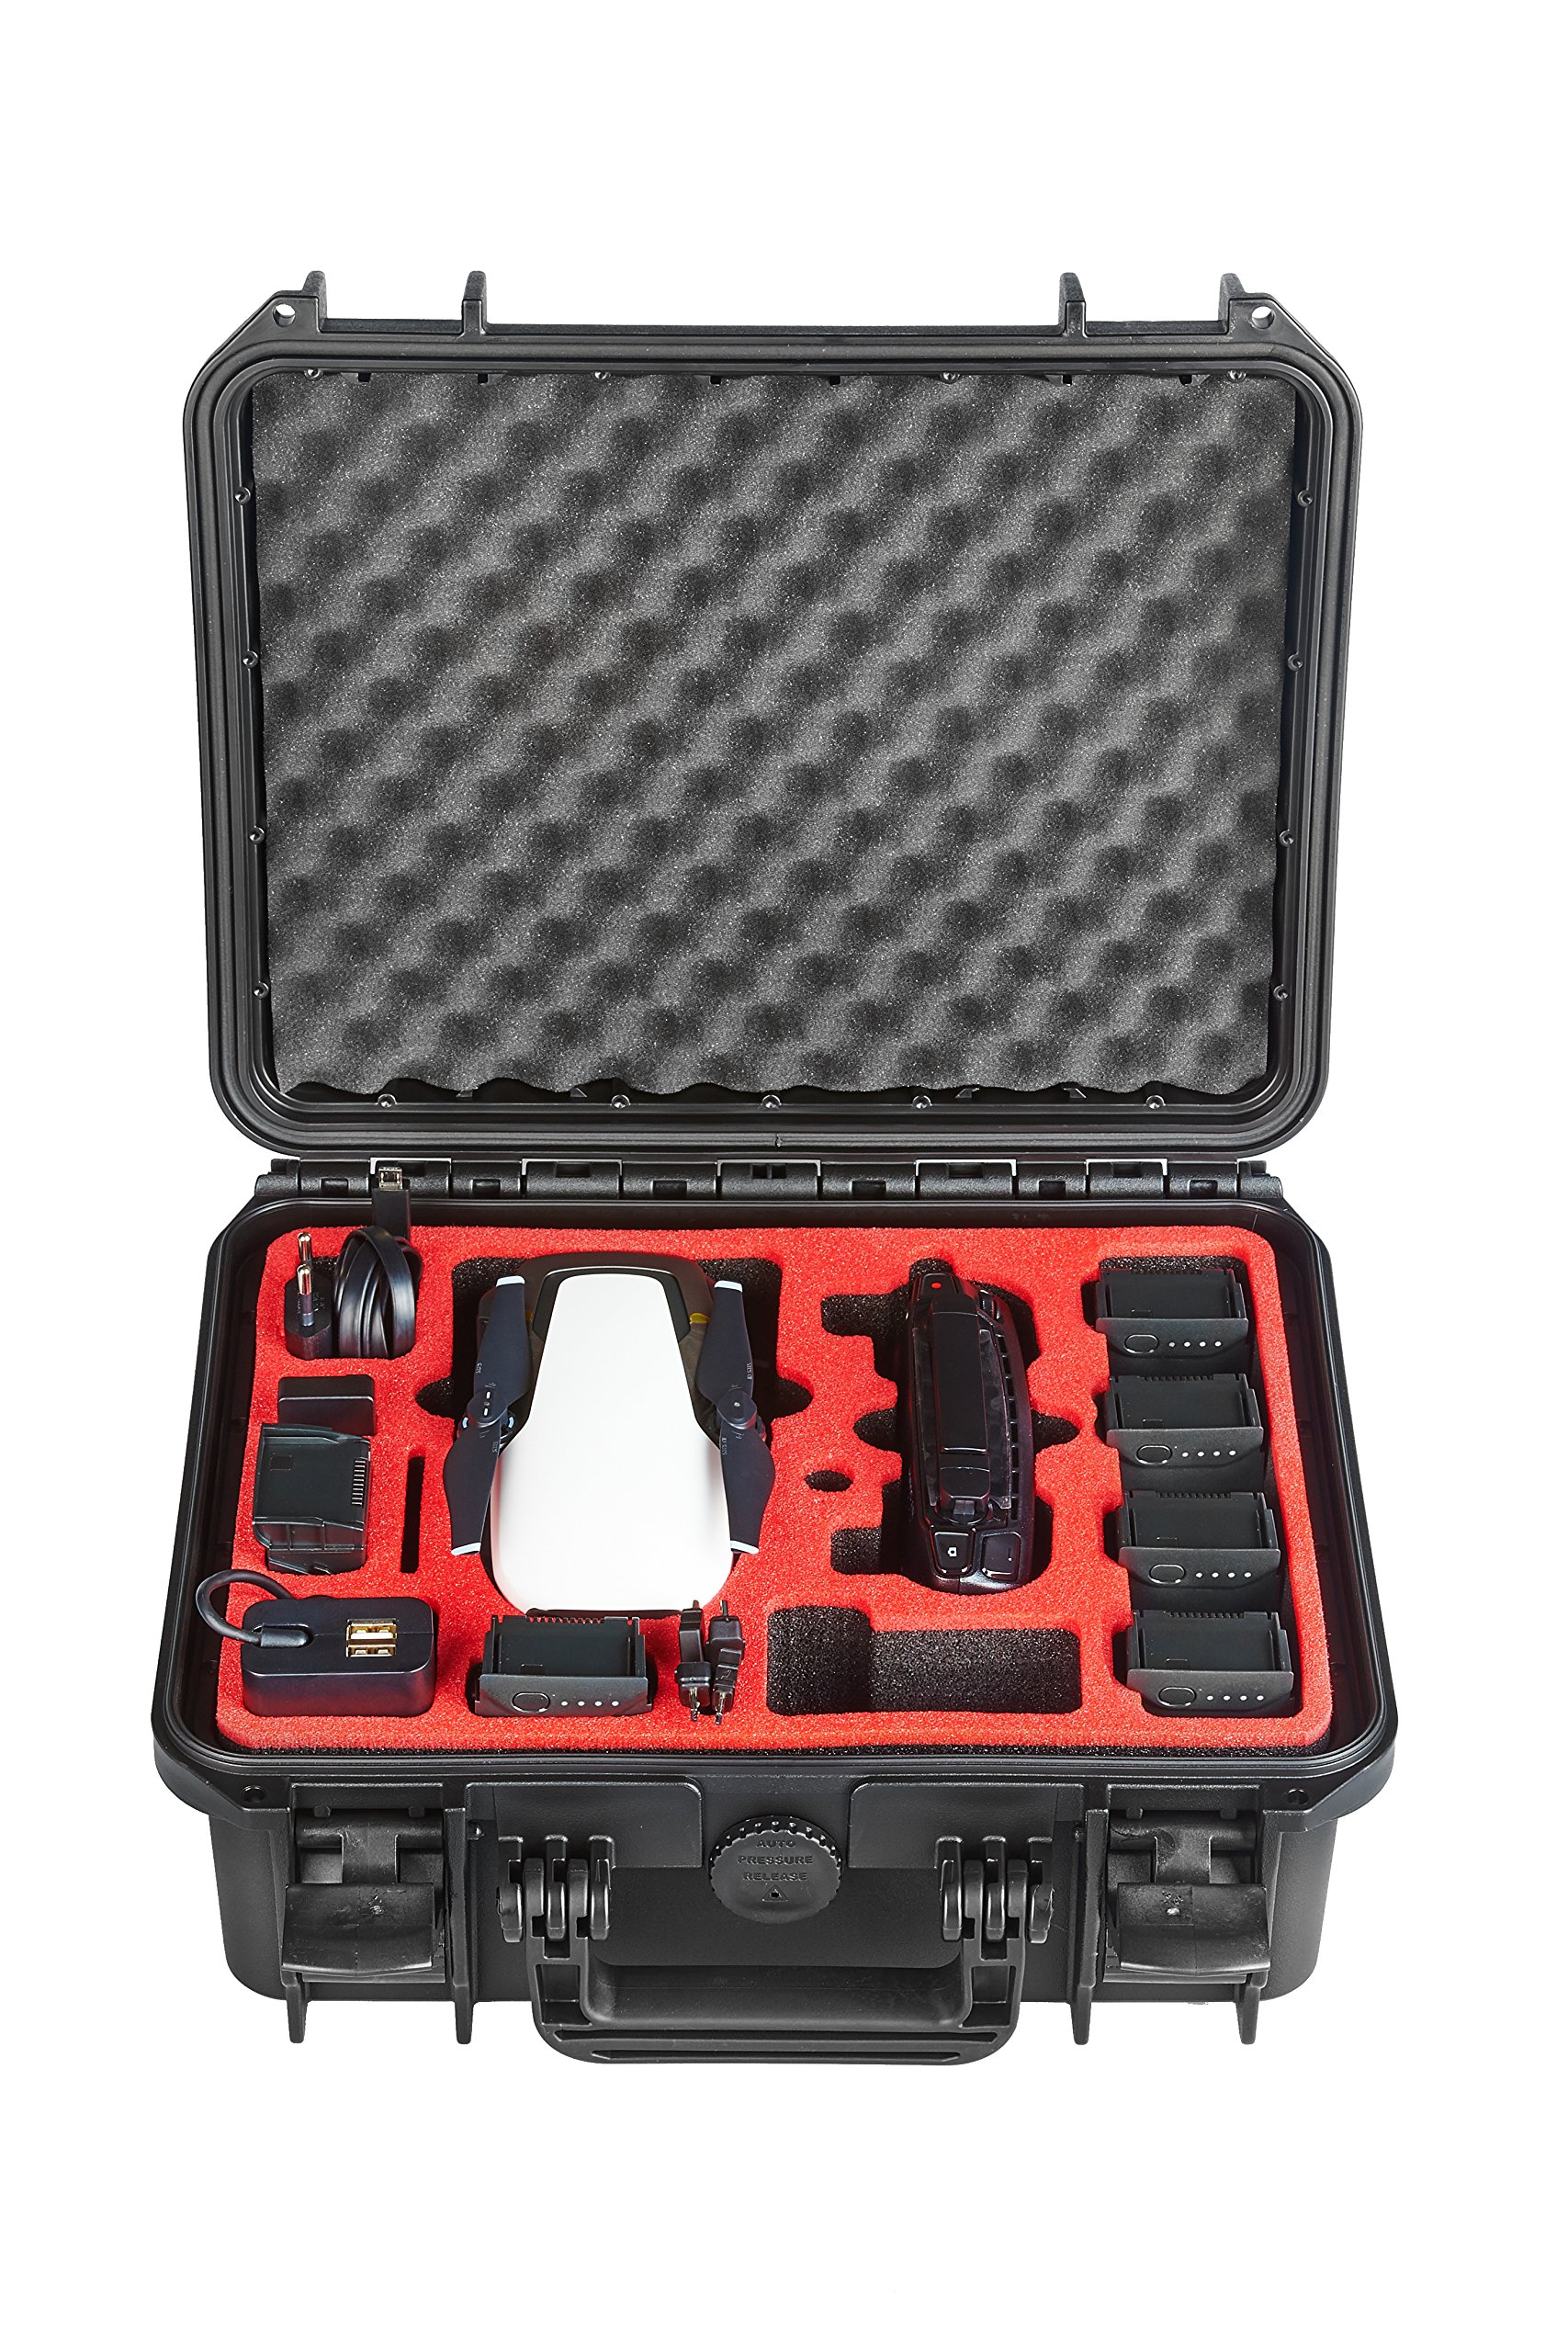 Professional Carry Case for DJI Mavic AIR - Made in Germany - by MC-CASES (Explorer Edition for DJI Mavic Air) by mc-cases (Image #1)